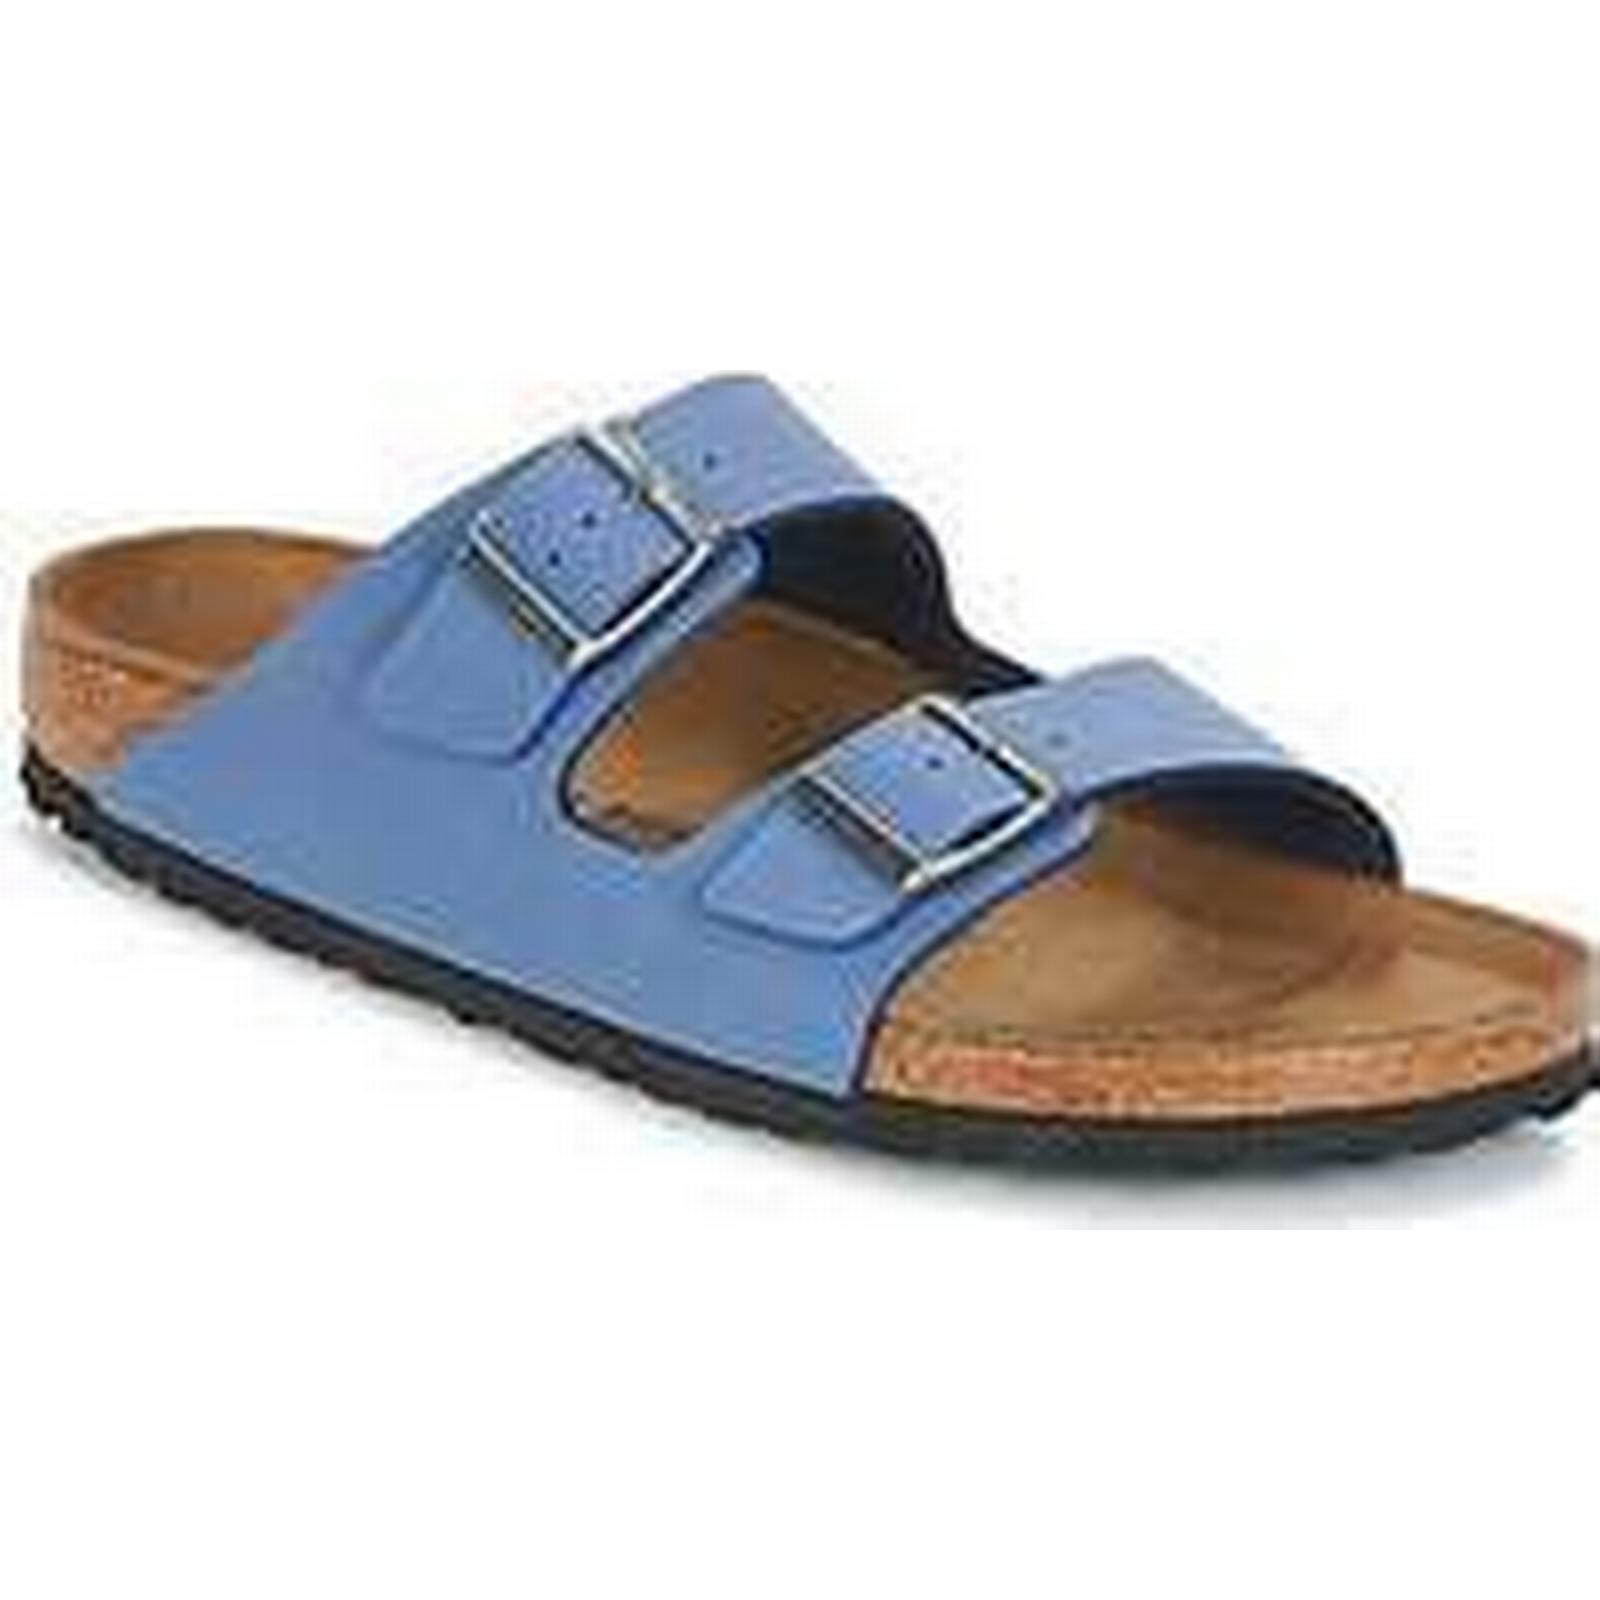 Spartoo.co.uk Birkenstock Casual ARIZONA men's Mules / Casual Birkenstock Shoes in Blue 2a19b6